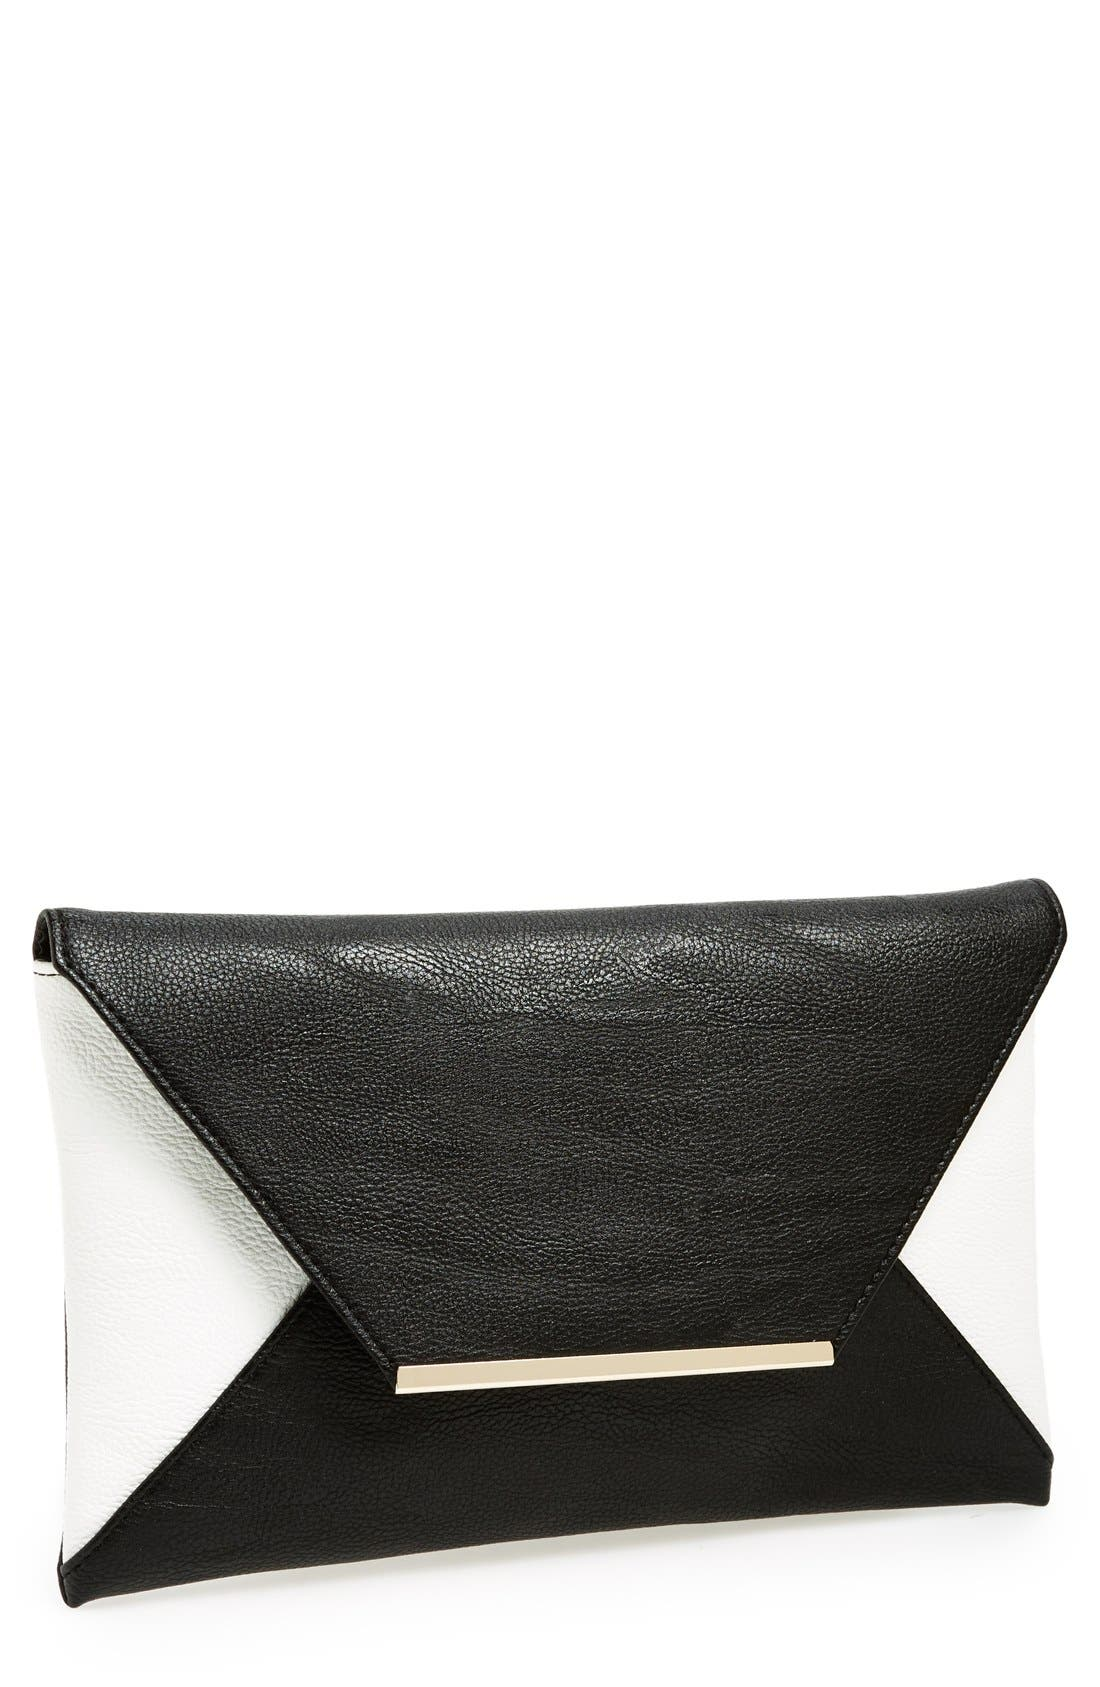 Alternate Image 1 Selected - POVERTY FLATS by rian Colorblock Envelope Clutch